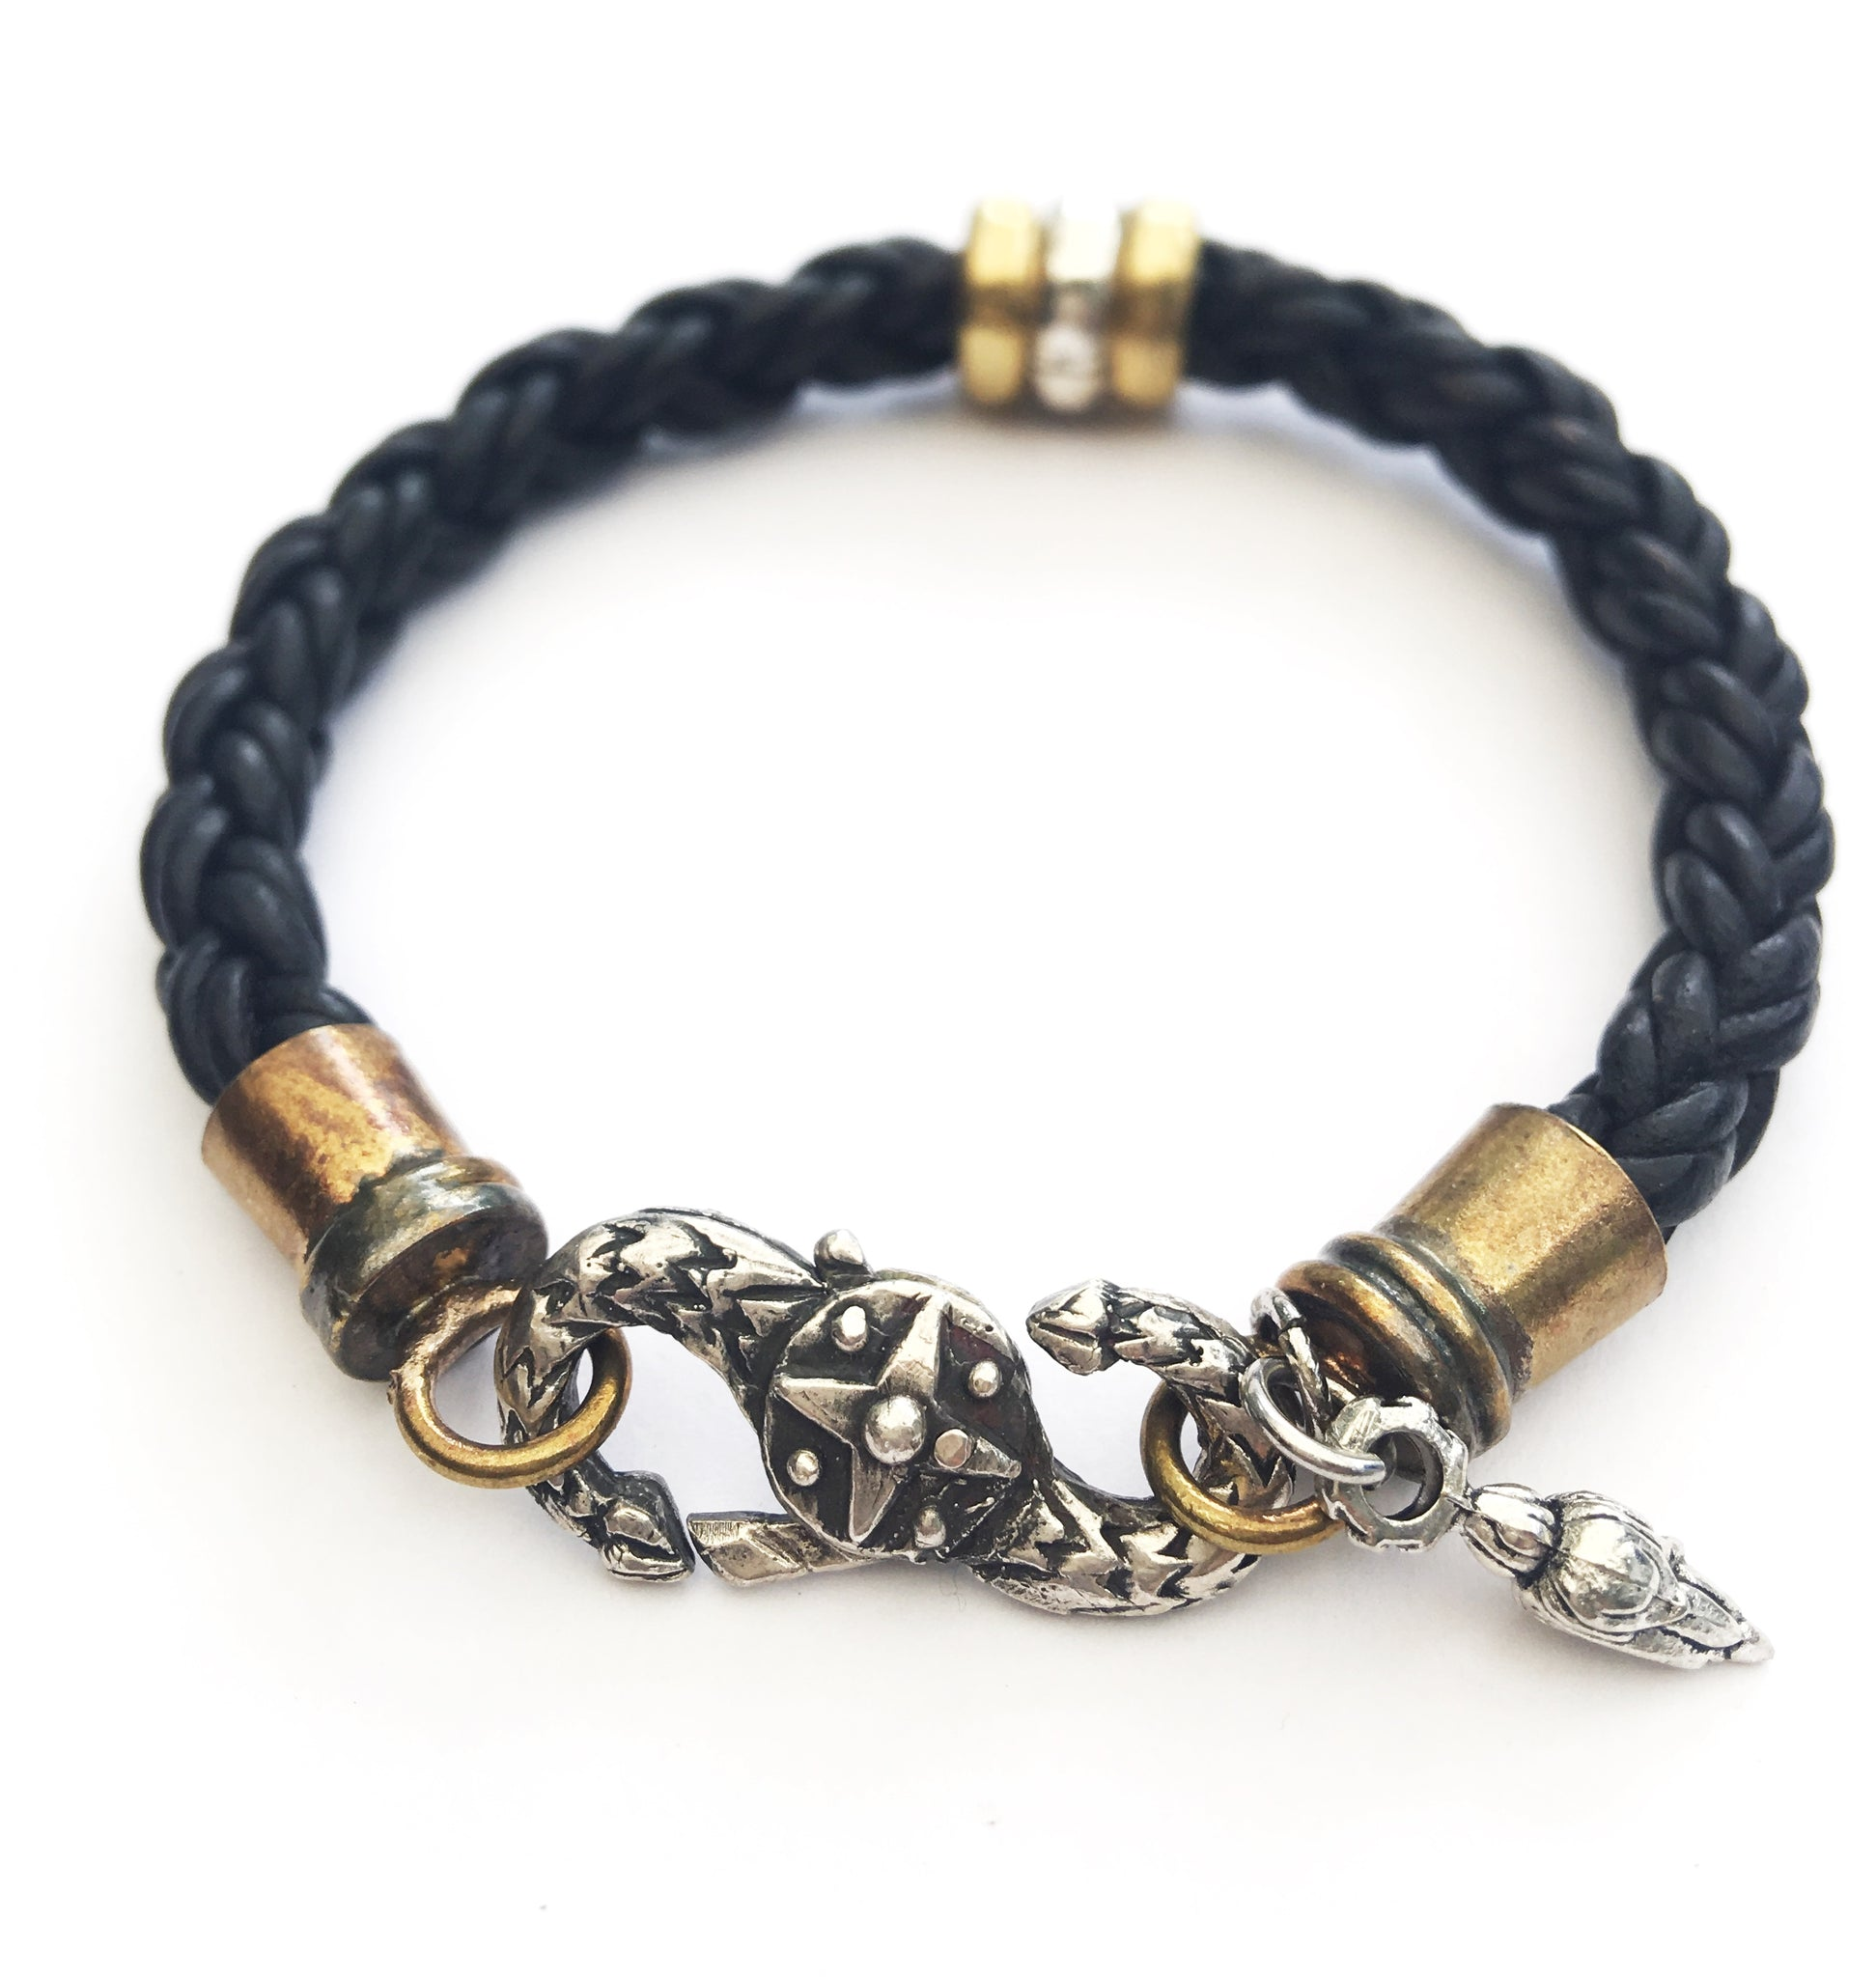 Edgy Leather Bracelet